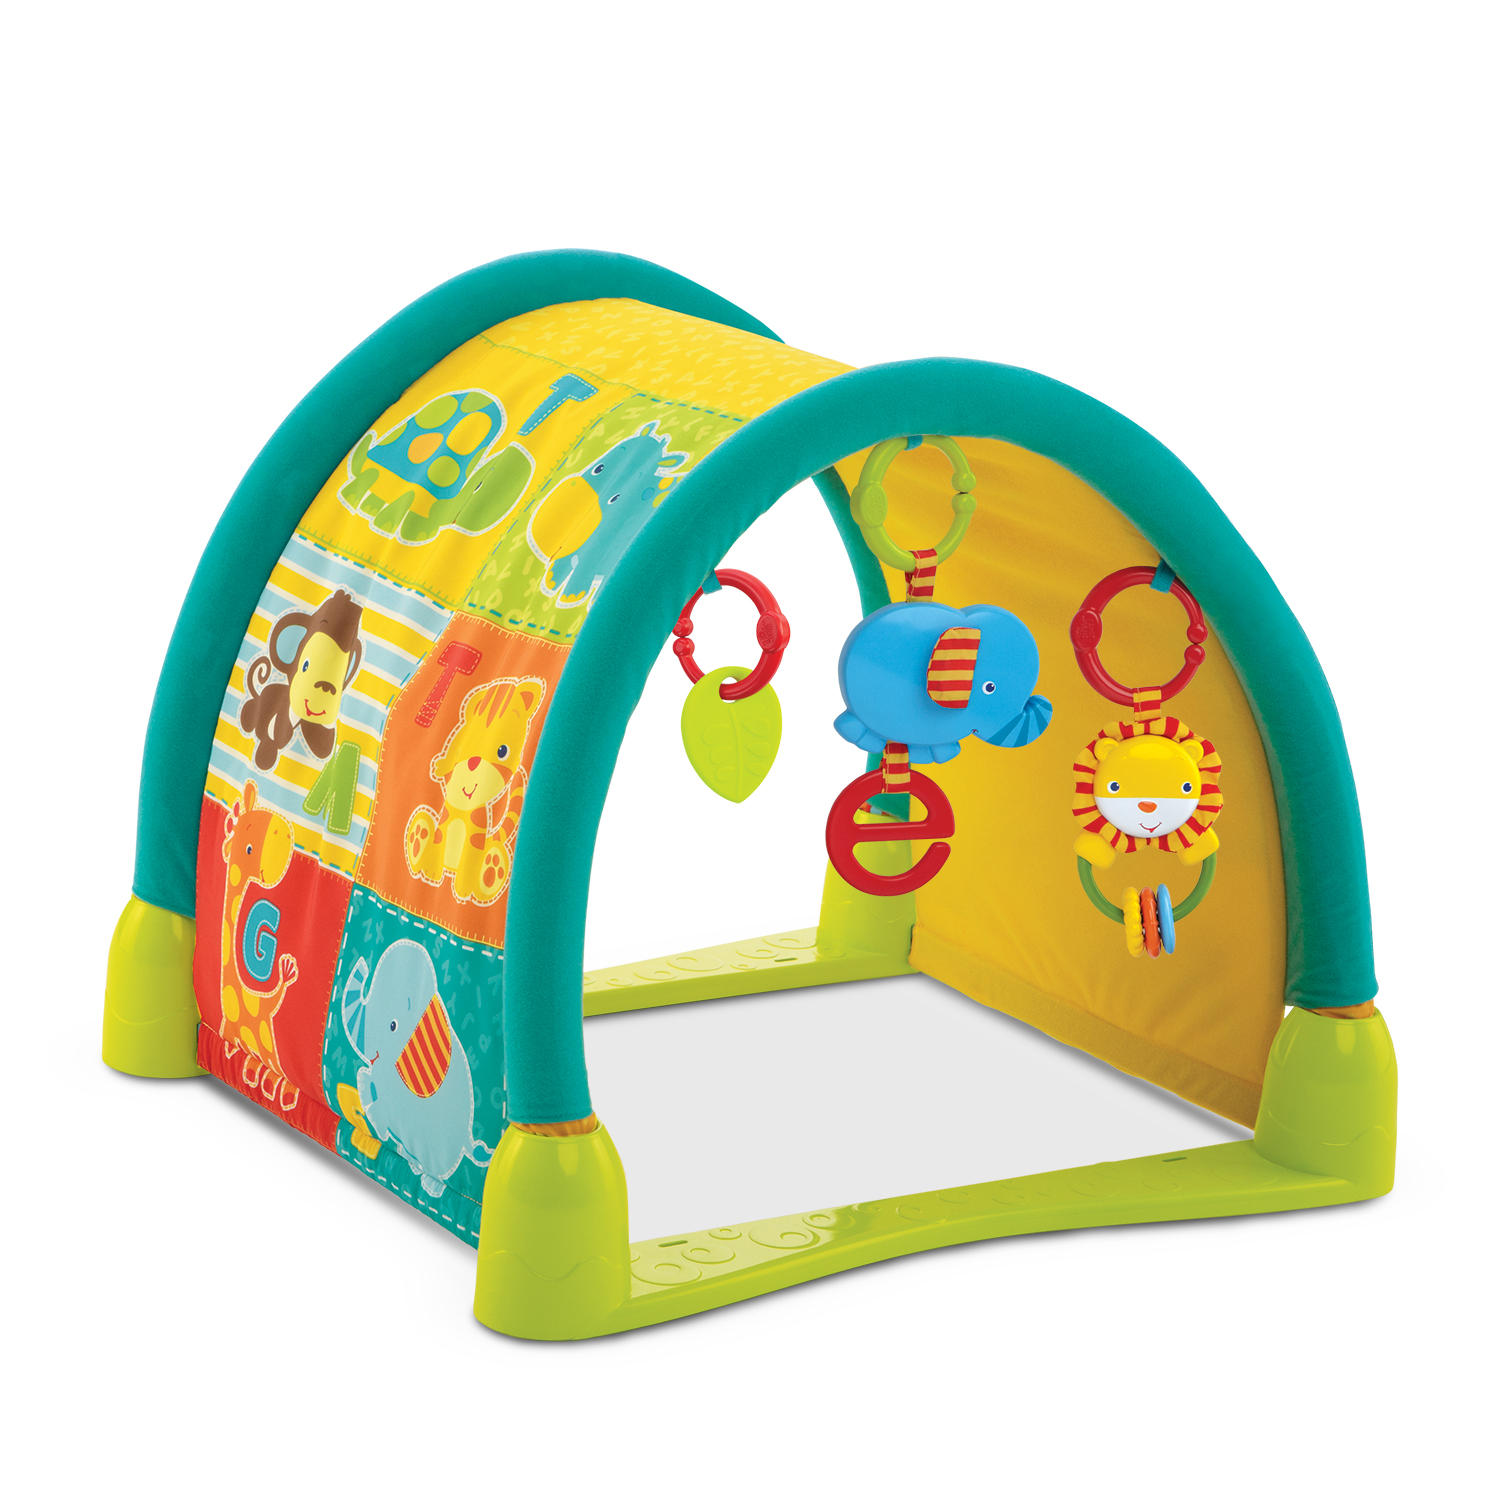 3-in-1 Jungle Fun Tunnel™ Activity Gym